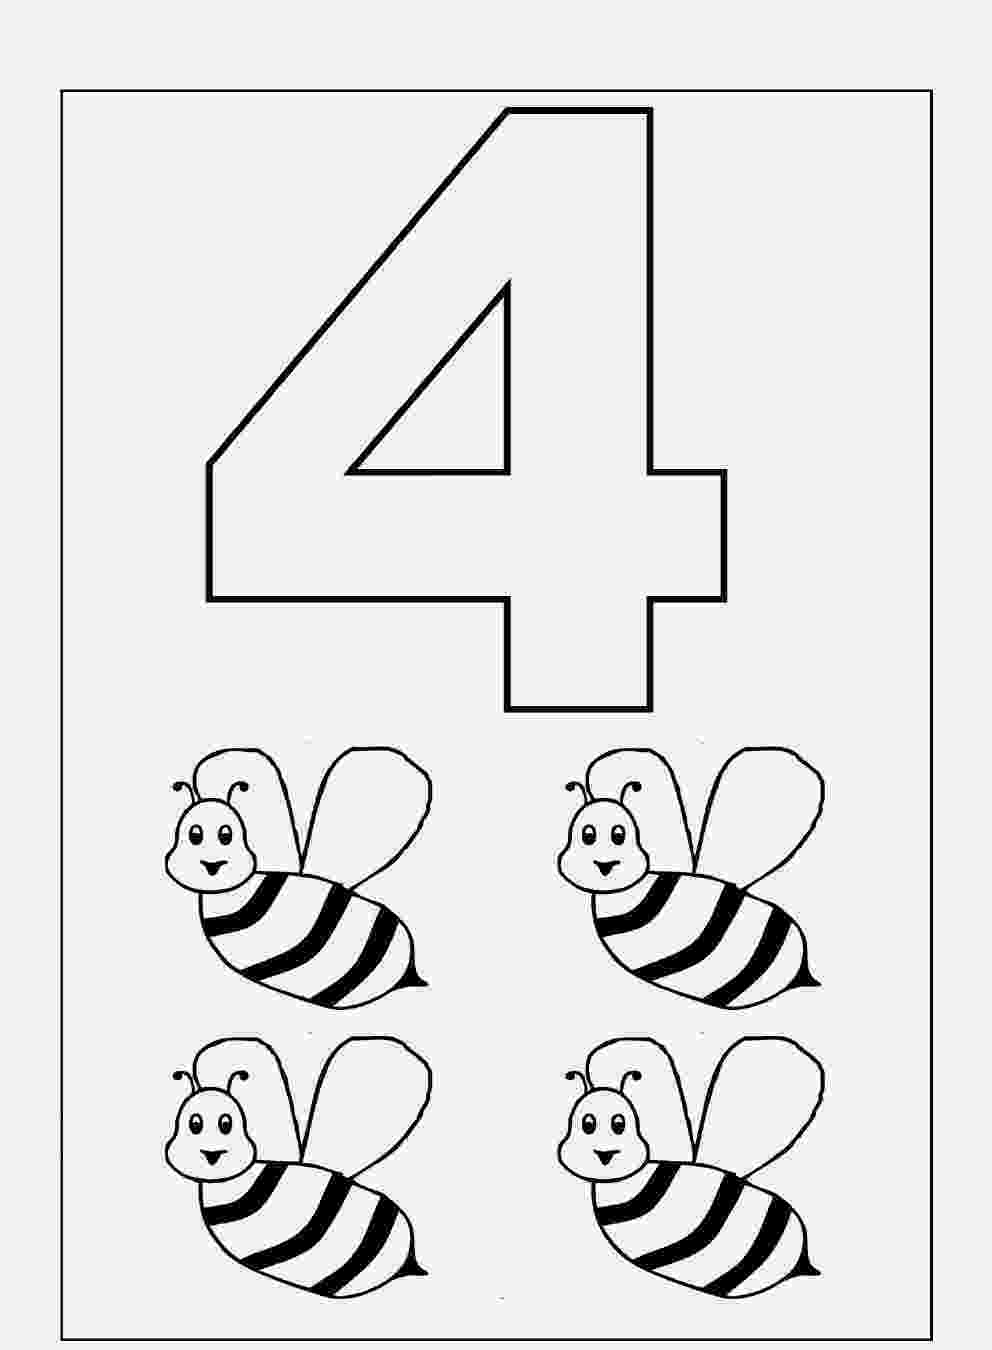 number 2 coloring pages for toddlers fileclassic alphabet numbers 2 at coloring pages for kids for coloring pages number 2 toddlers